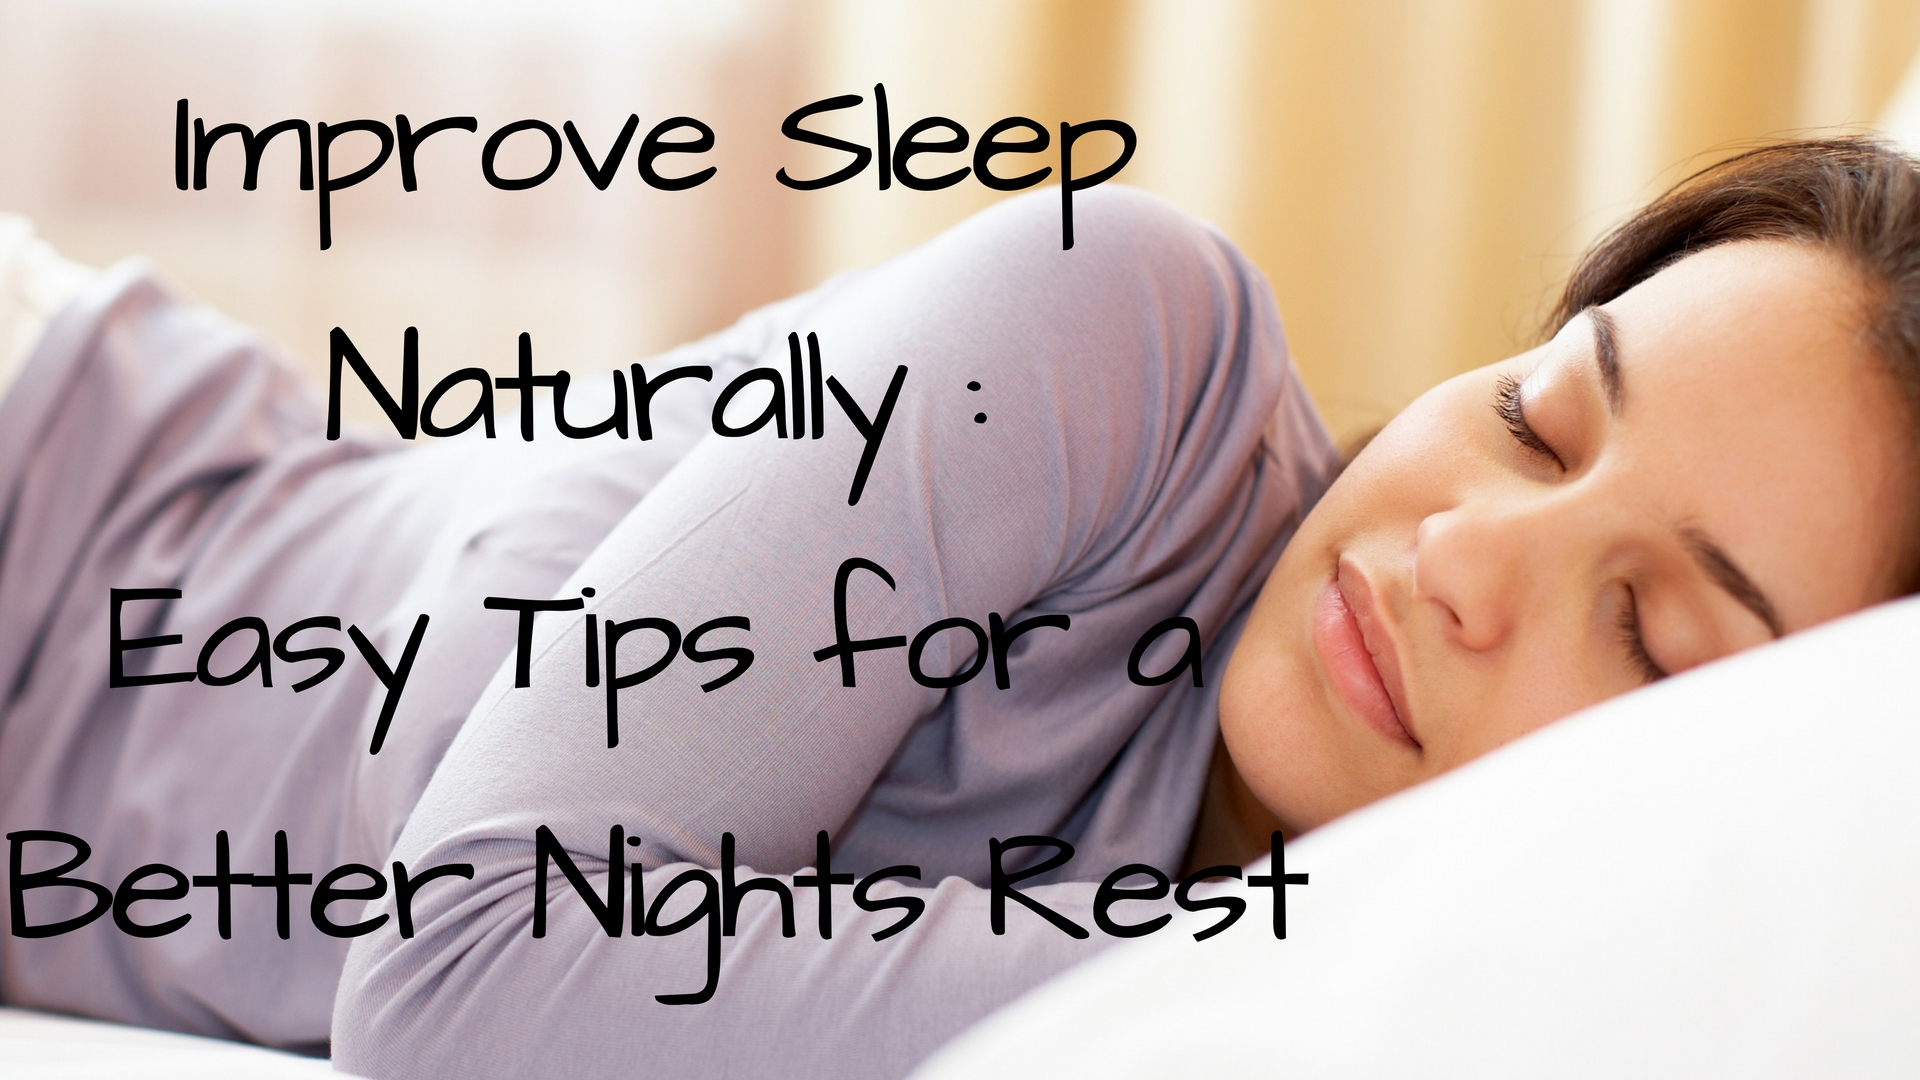 Improve Sleep Naturally: Easy Tips for a Better Nights Rest